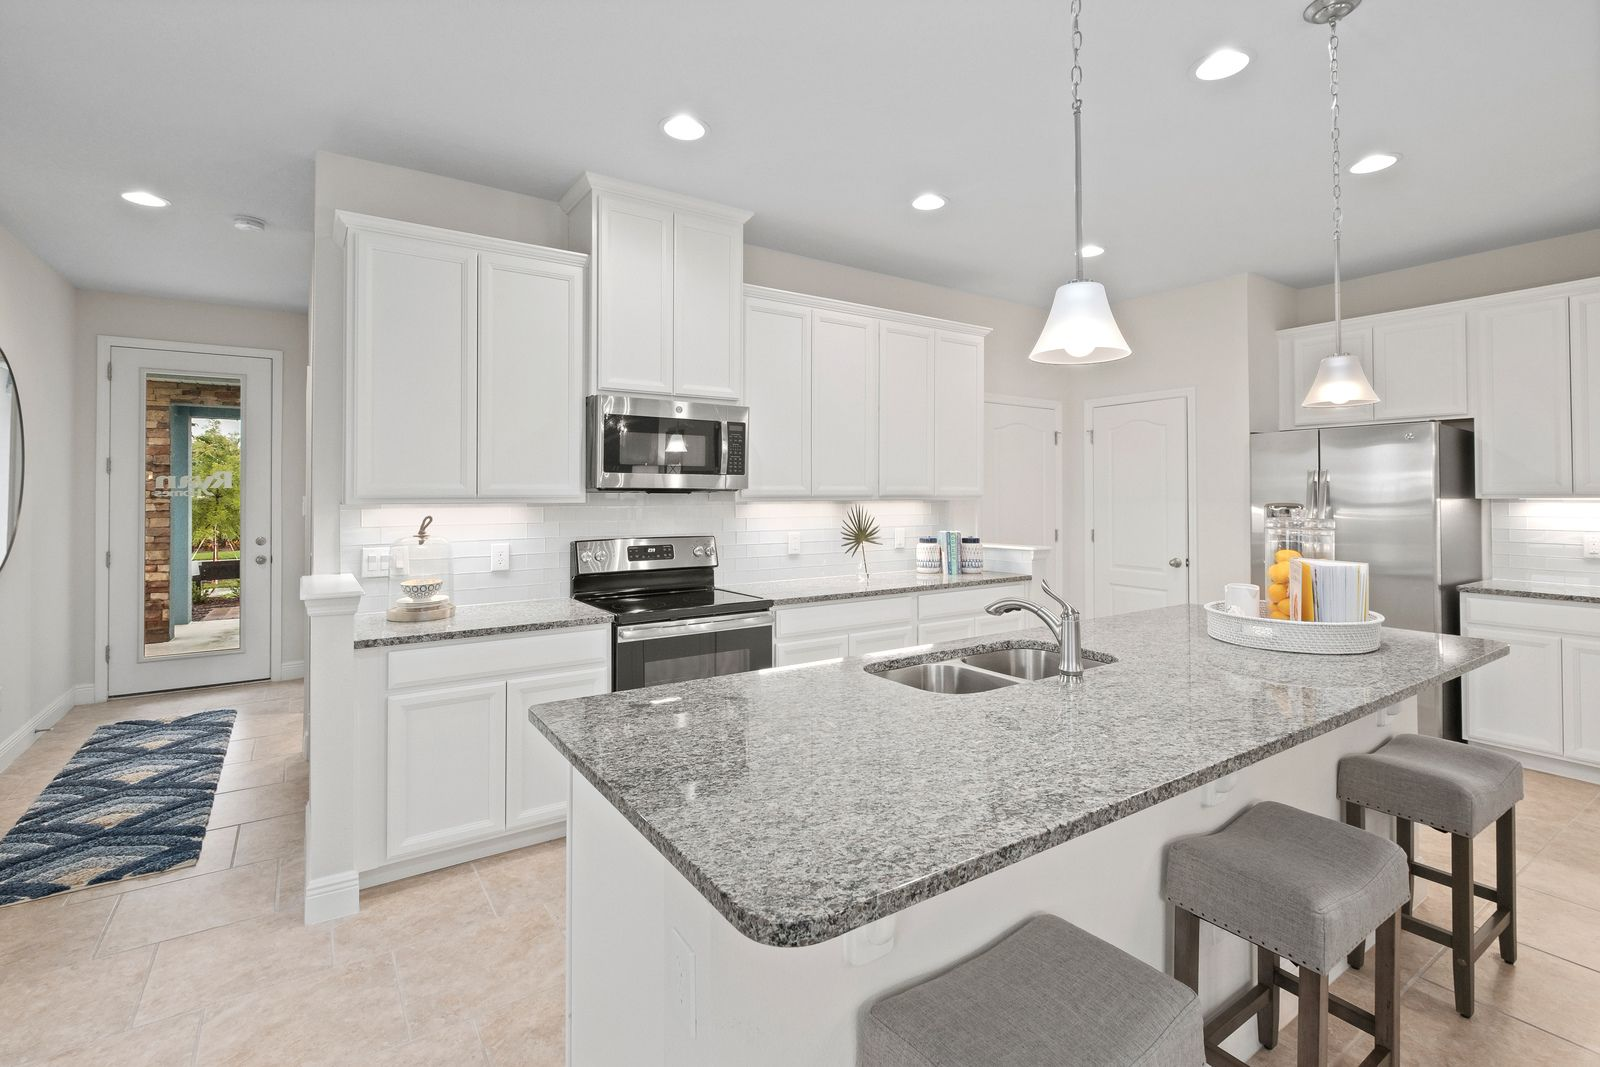 Kitchen featured in the Aspen-Arbor By Ryan Homes in Orlando, FL